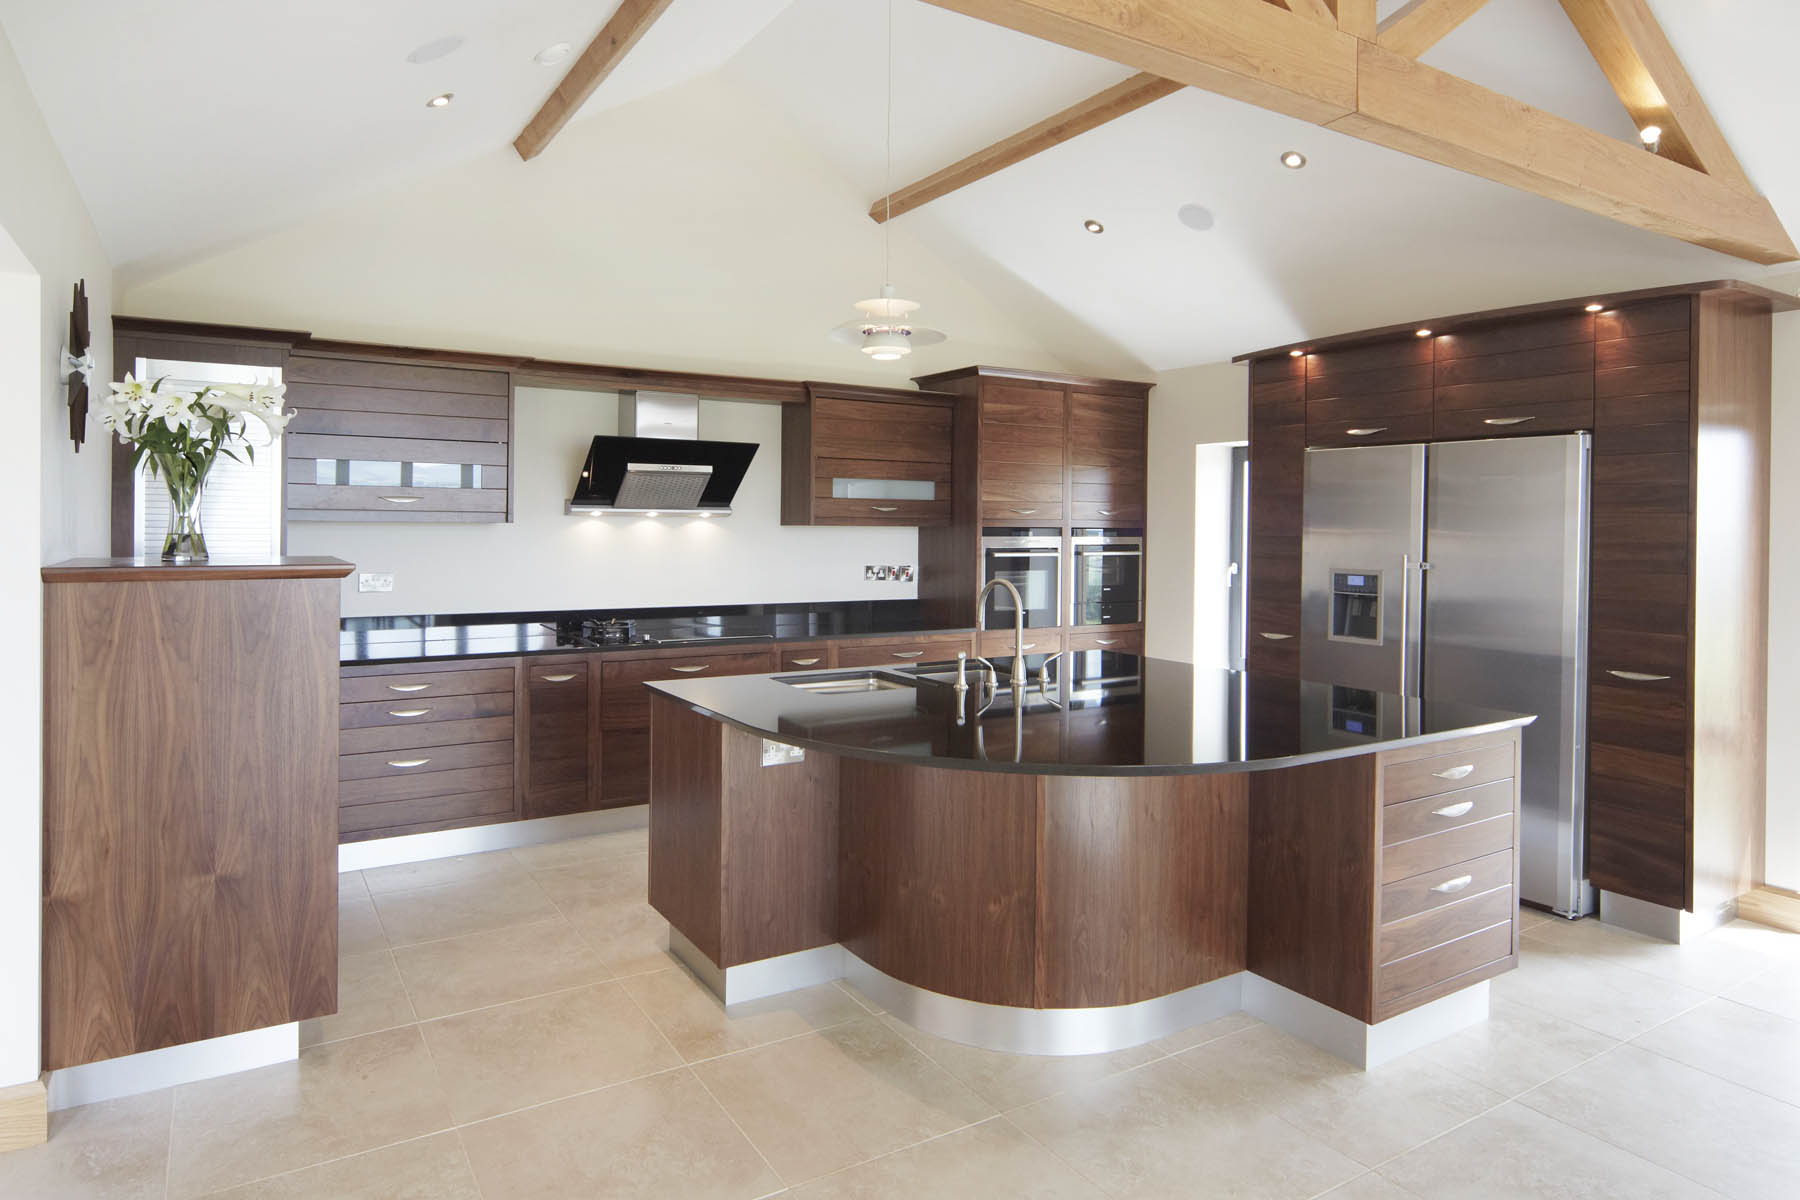 Kitchens california remodeling inc for Kitchen styles and designs